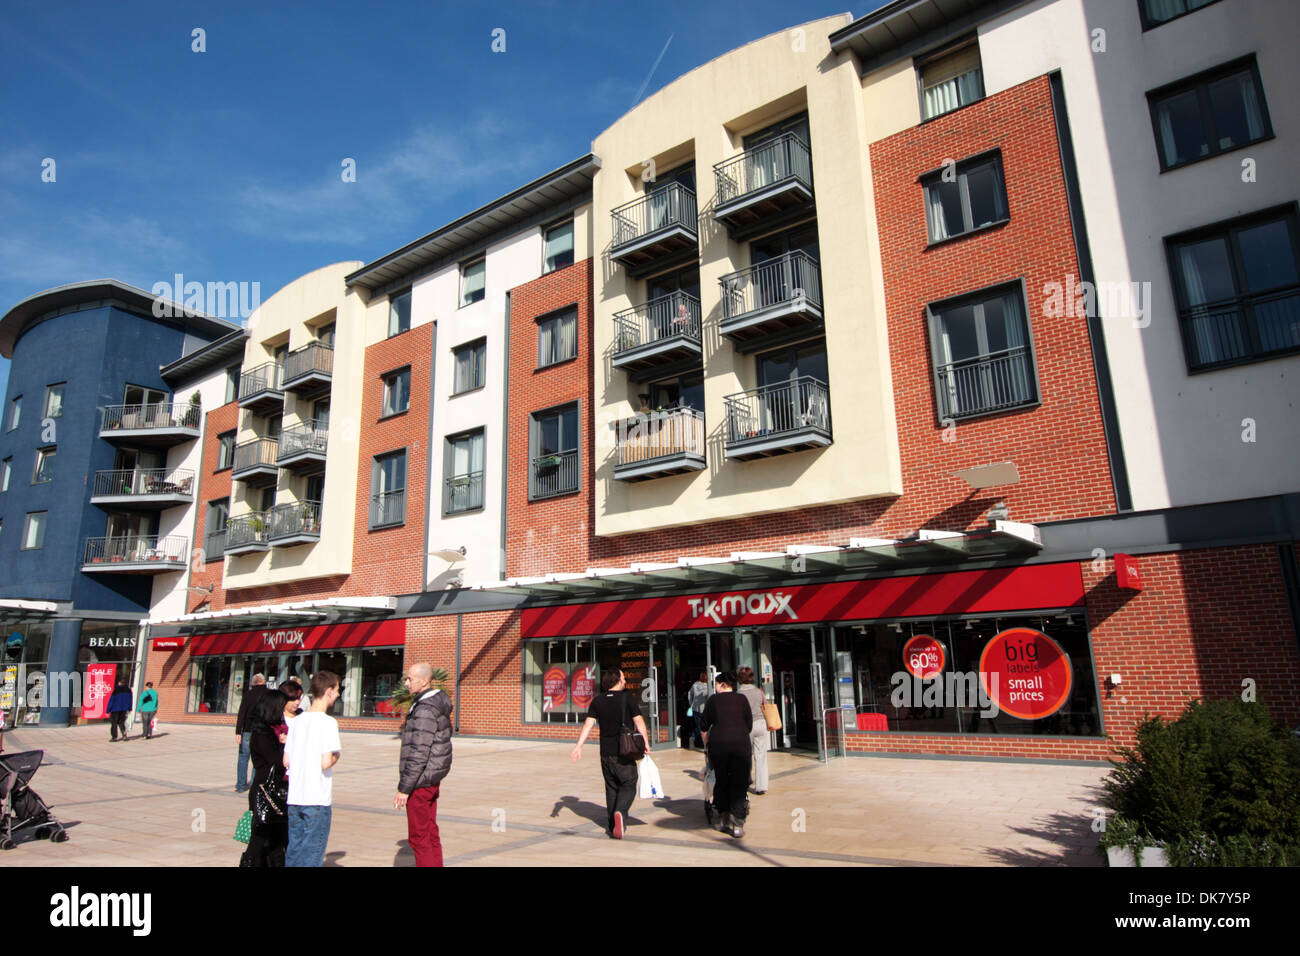 Shop With Apartments Above Stock Photos & Shop With Apartments Above ...